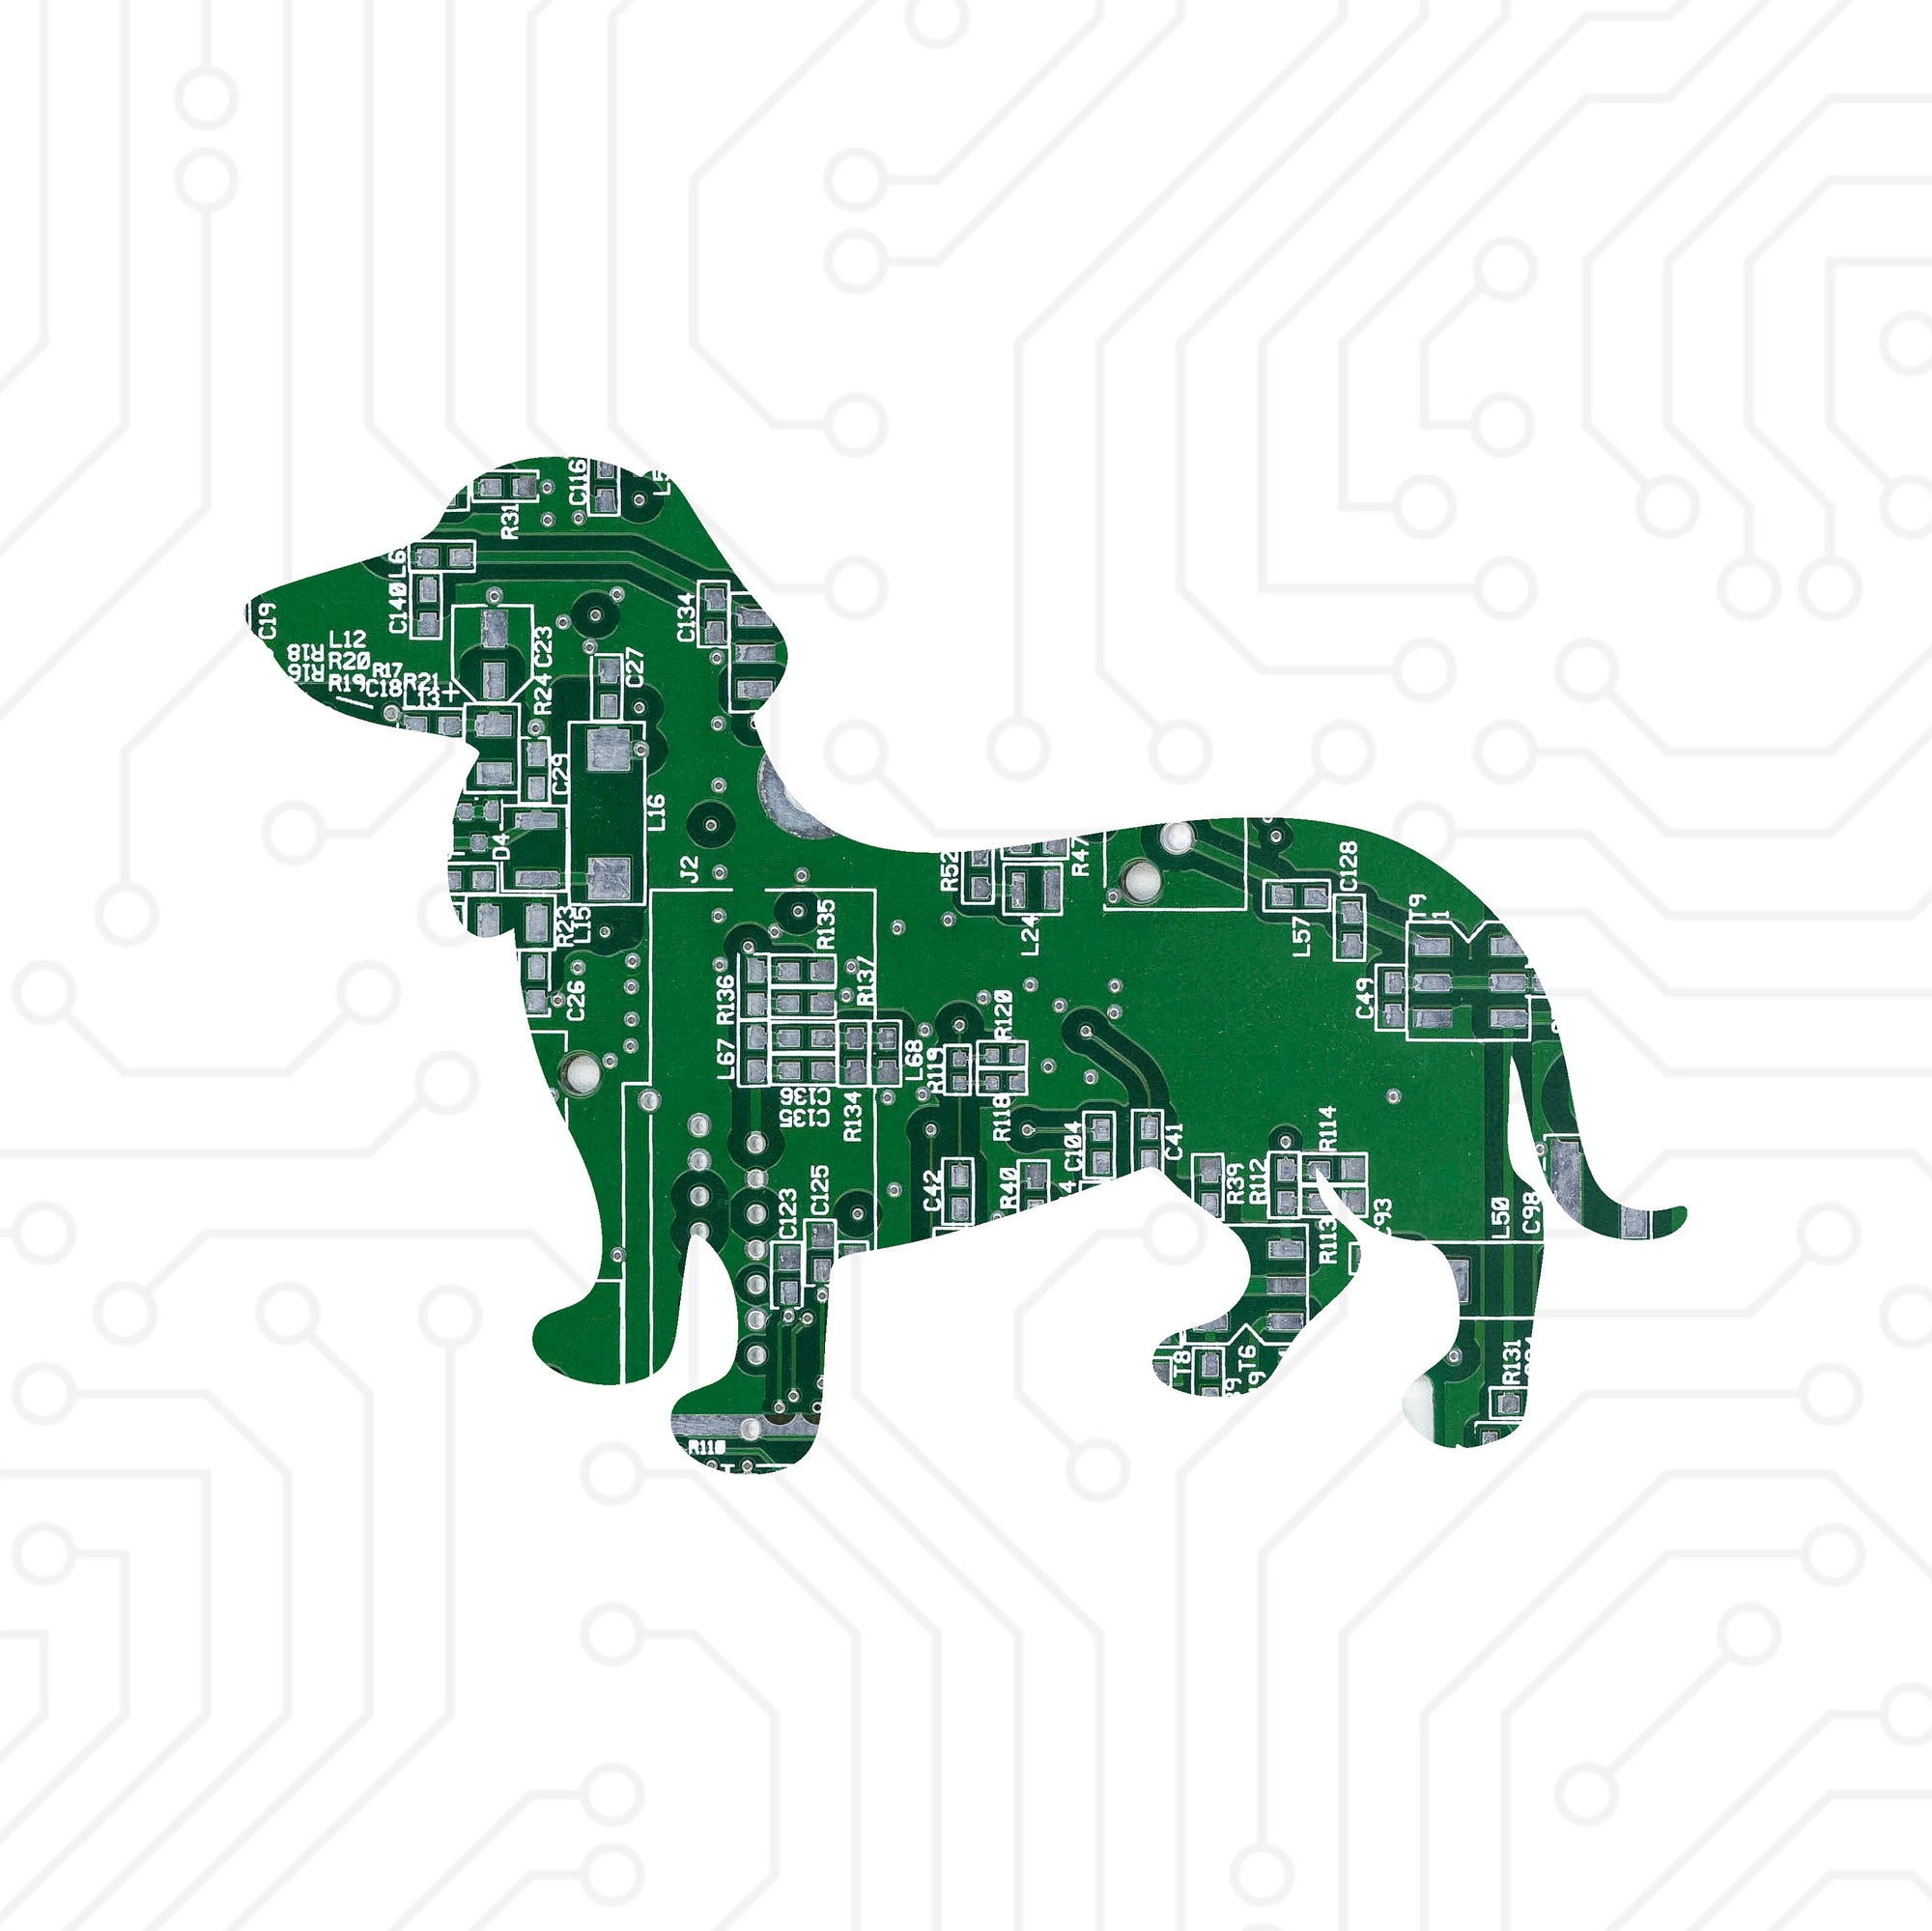 Circuit Board Dachshund (Wiener Dog) - TechWears Ltd